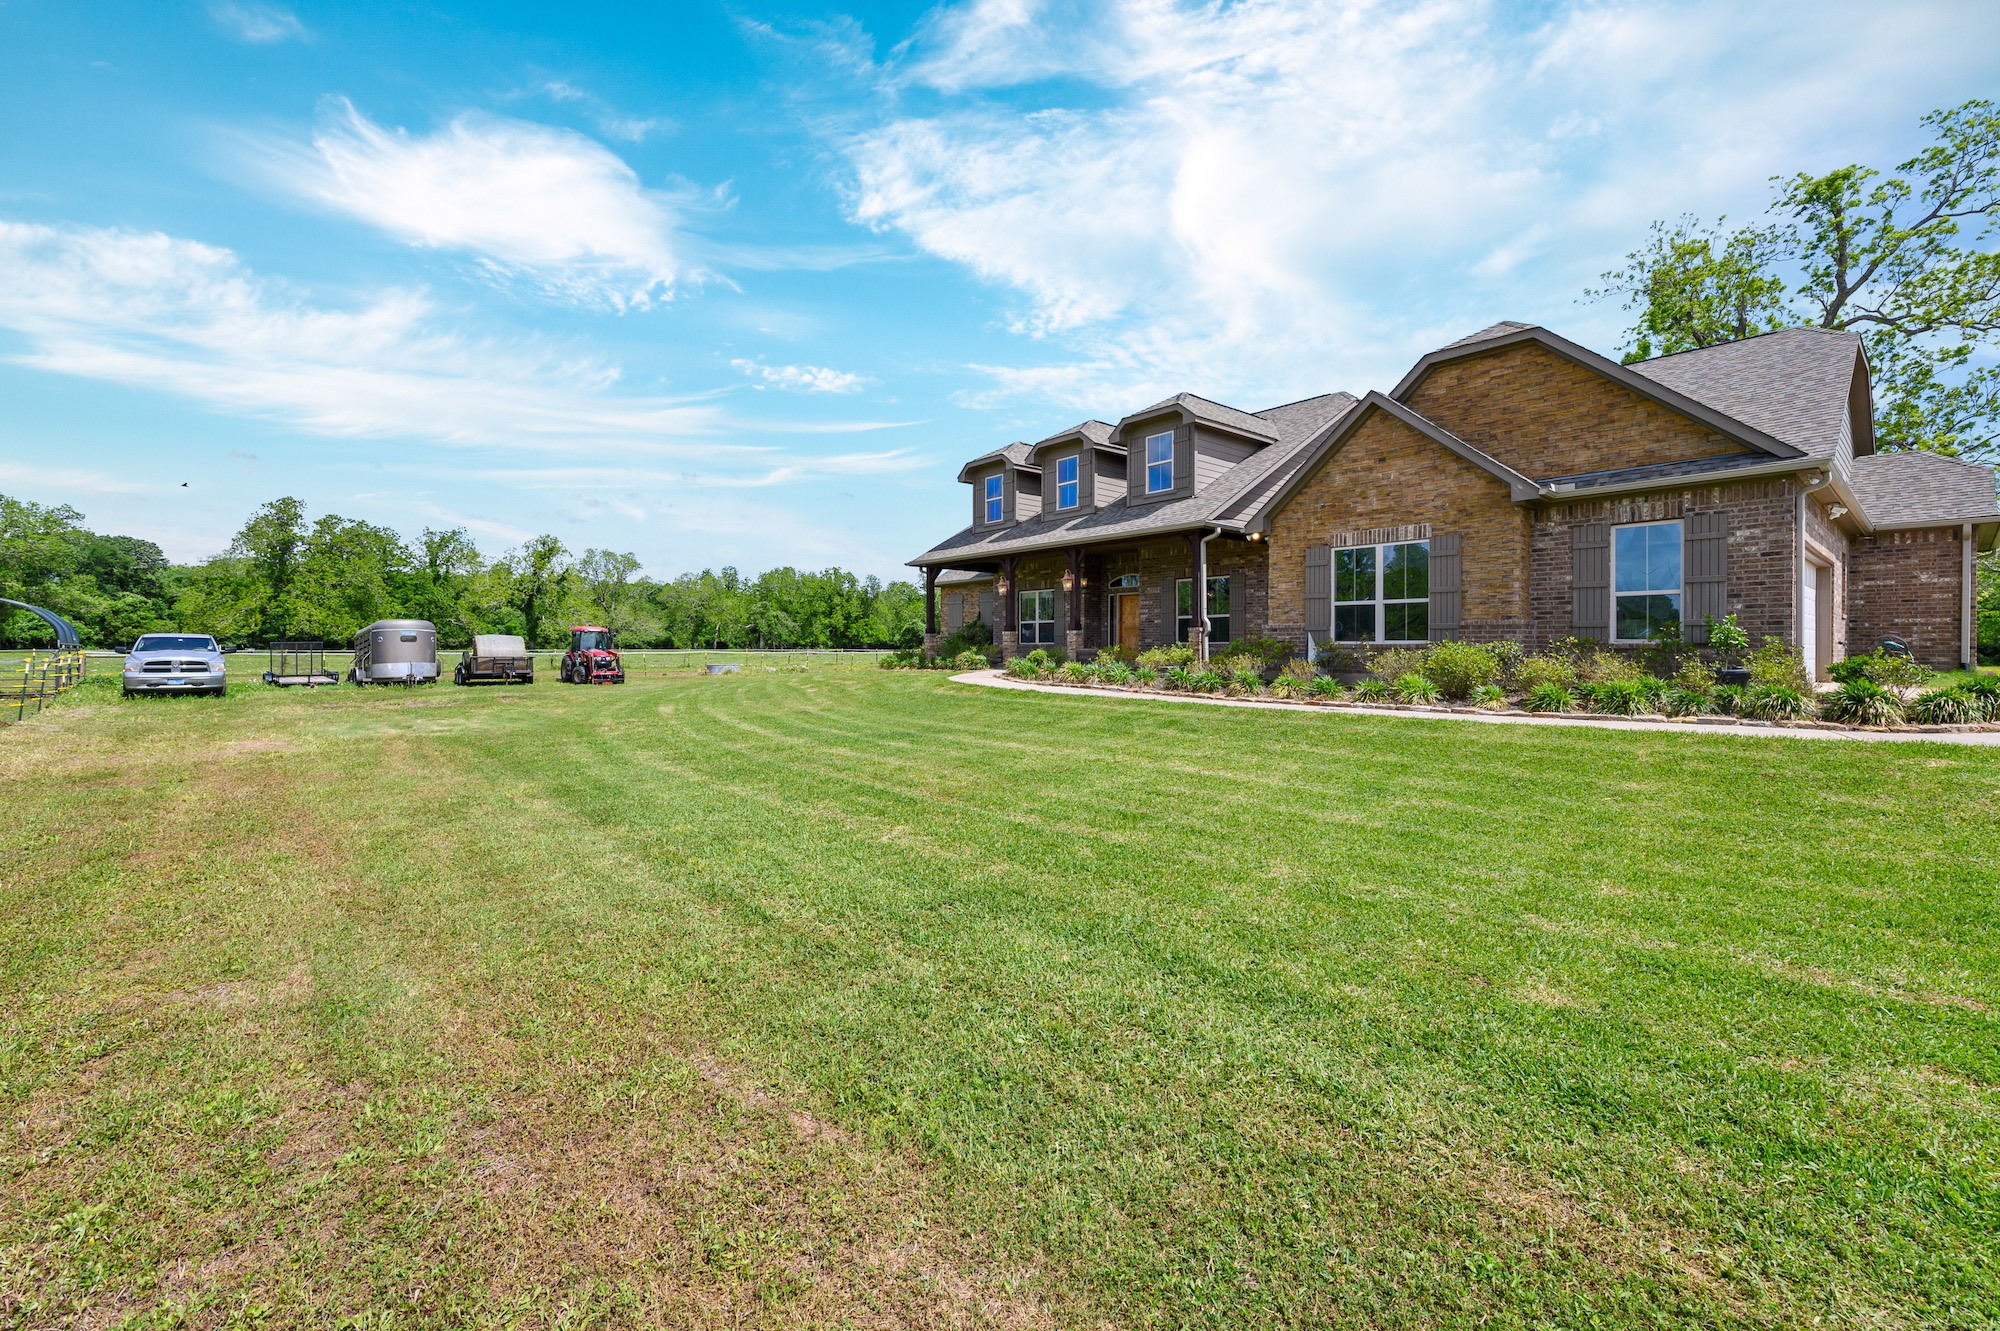 Custom Country Home with Acreage in Sealy - Image 40 of 46